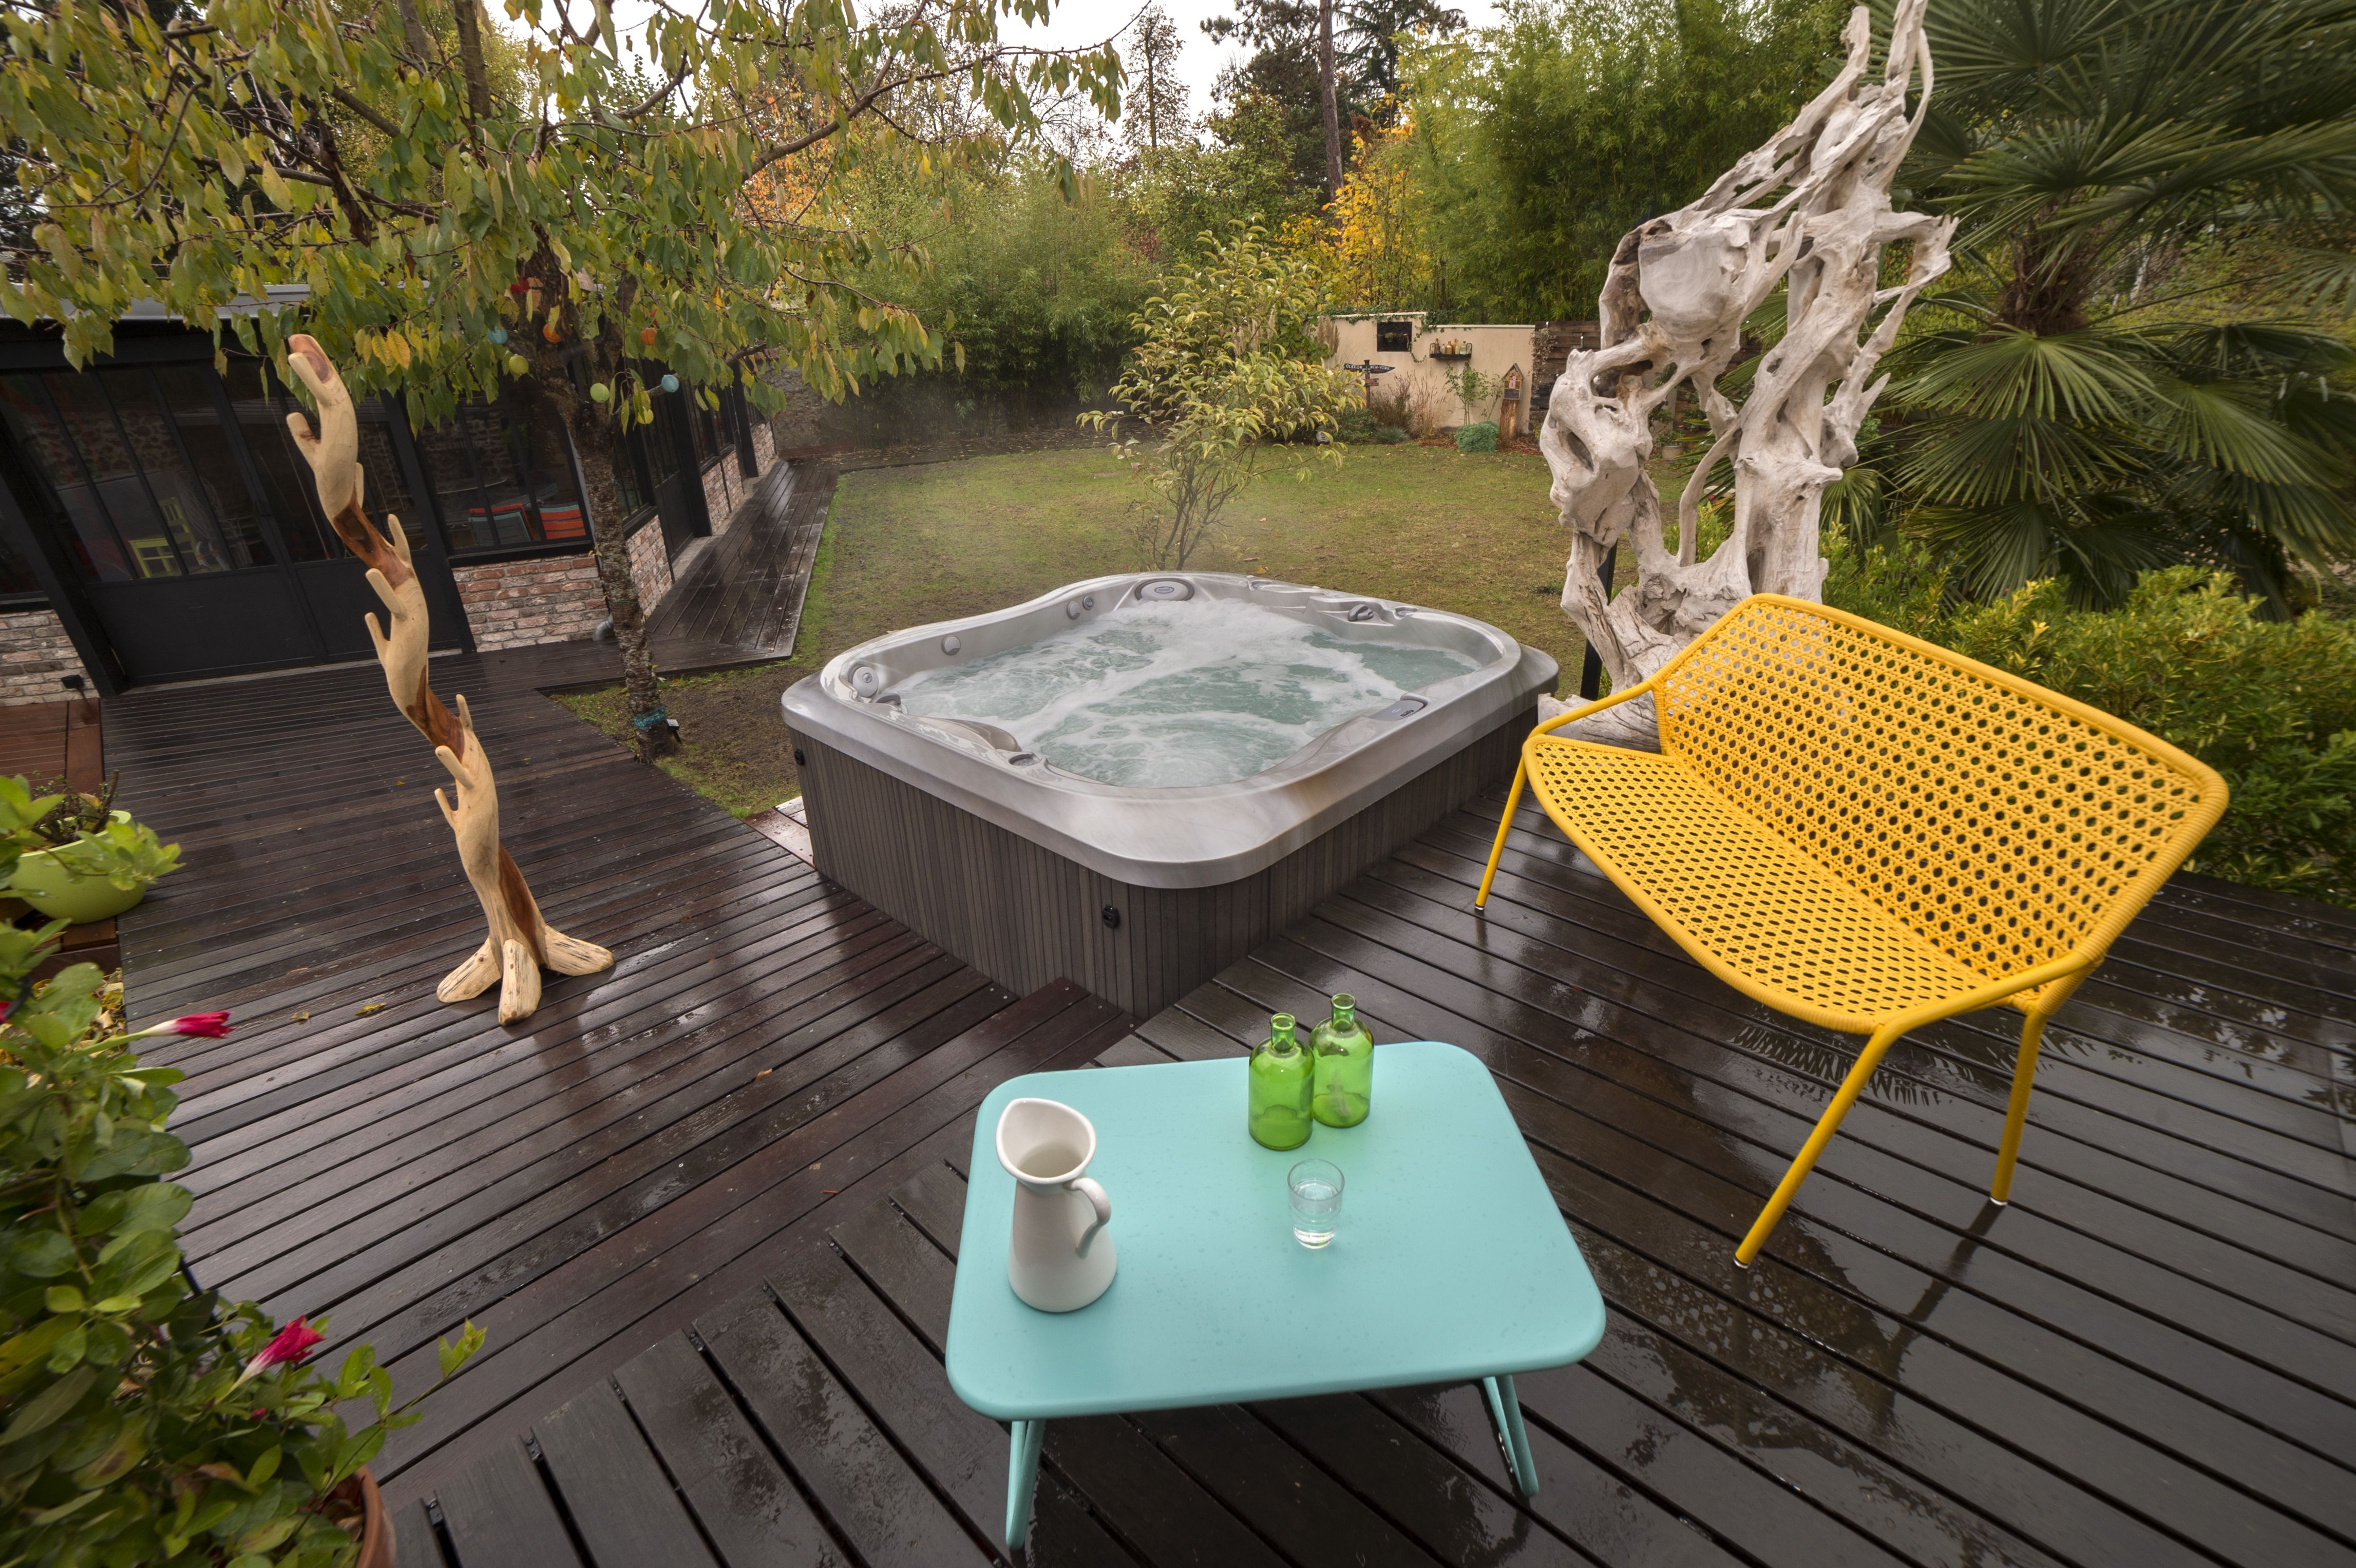 installation d 39 un spa jacuzzi j 335 dans le prolongement d 39 une terrasse en bois paris spas. Black Bedroom Furniture Sets. Home Design Ideas